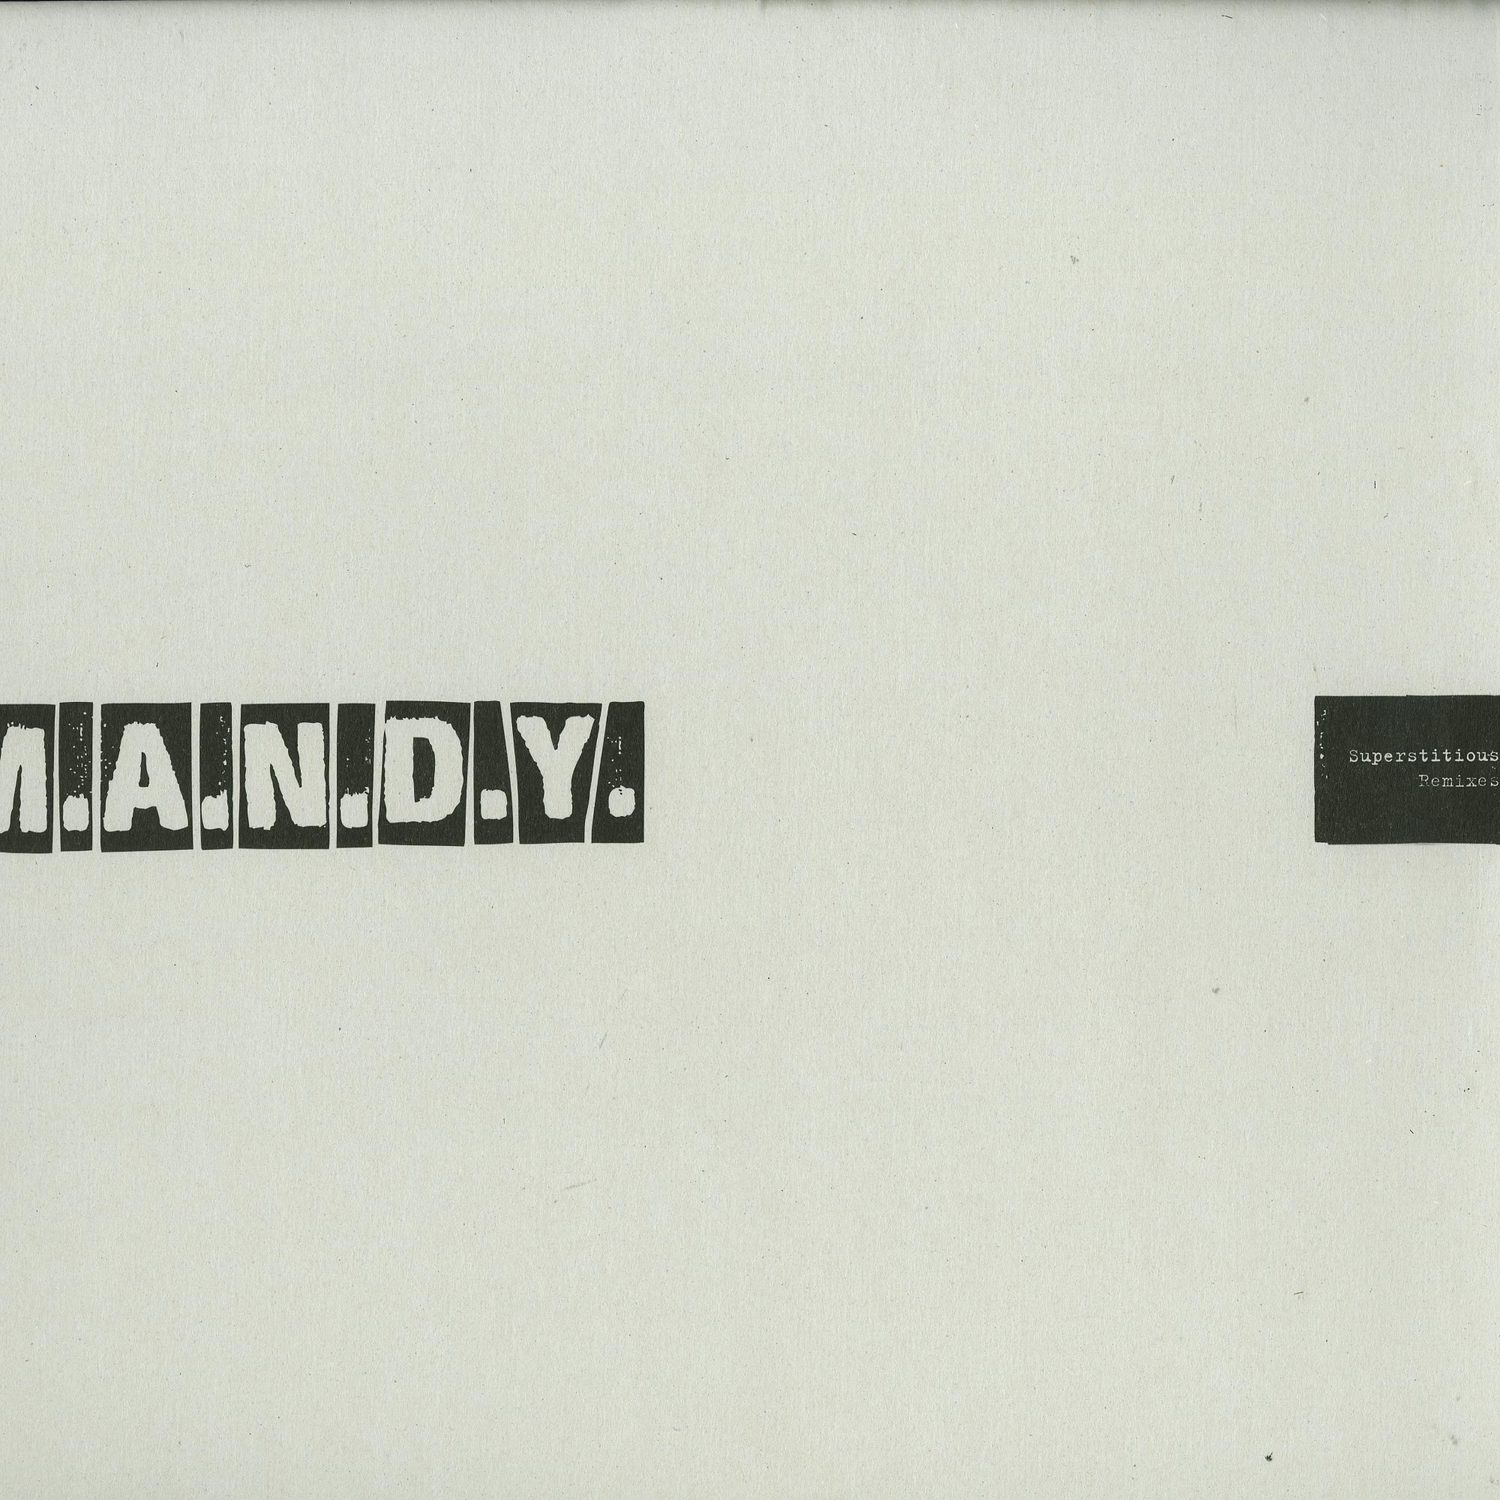 M.a.n.d.y. - SUPERSTITIOUS